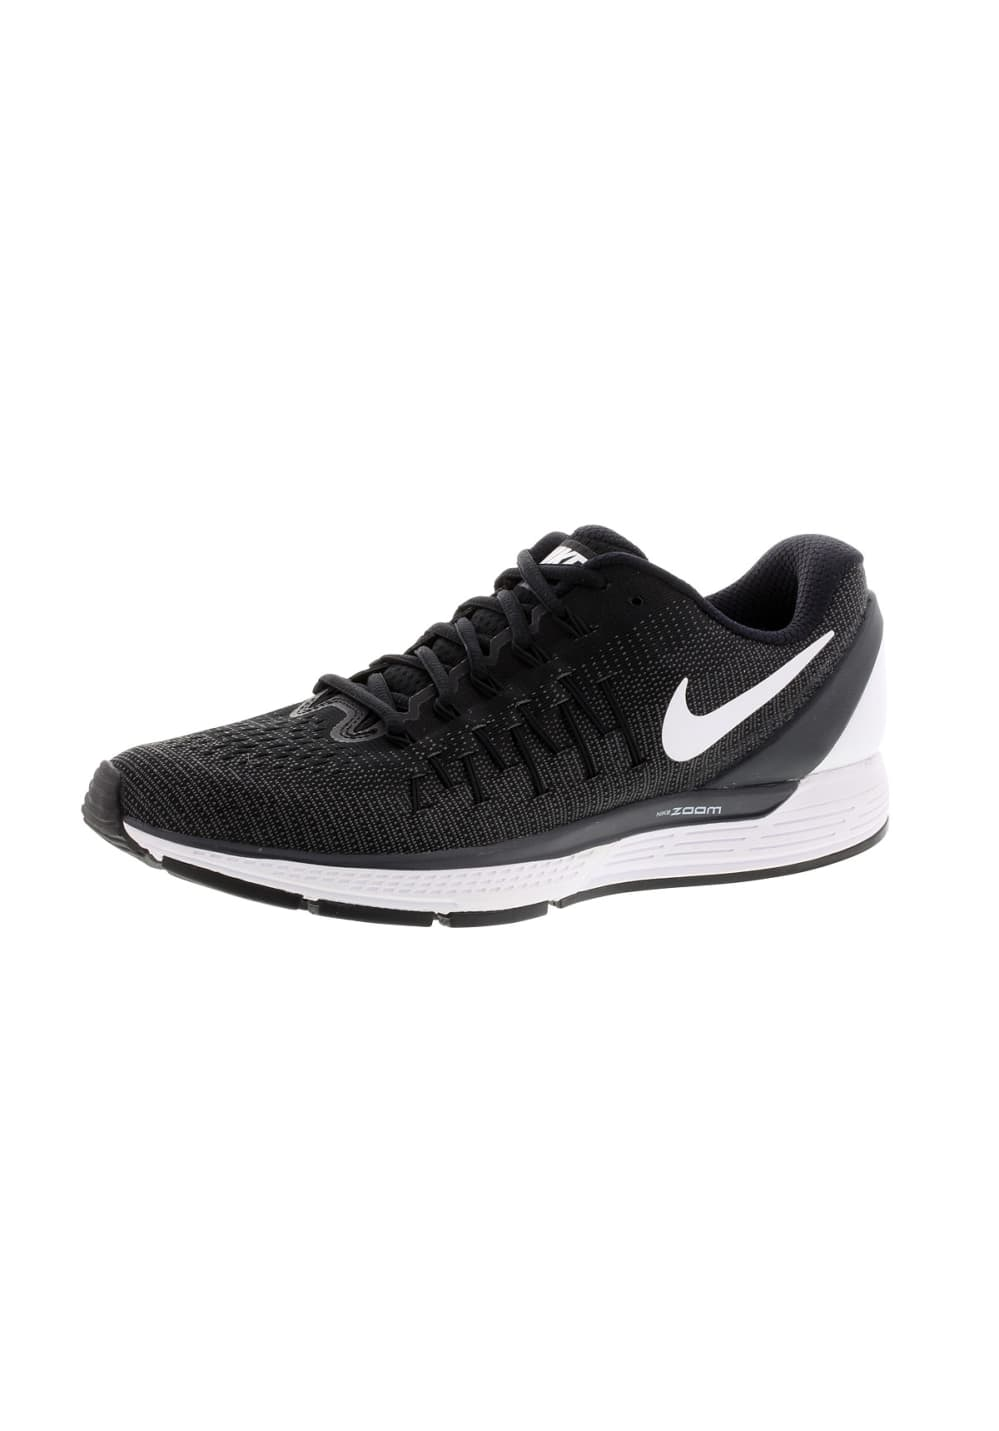 une autre chance 1a378 017ed Nike Air Zoom Odyssey 2 - Chaussures running pour Homme - Noir